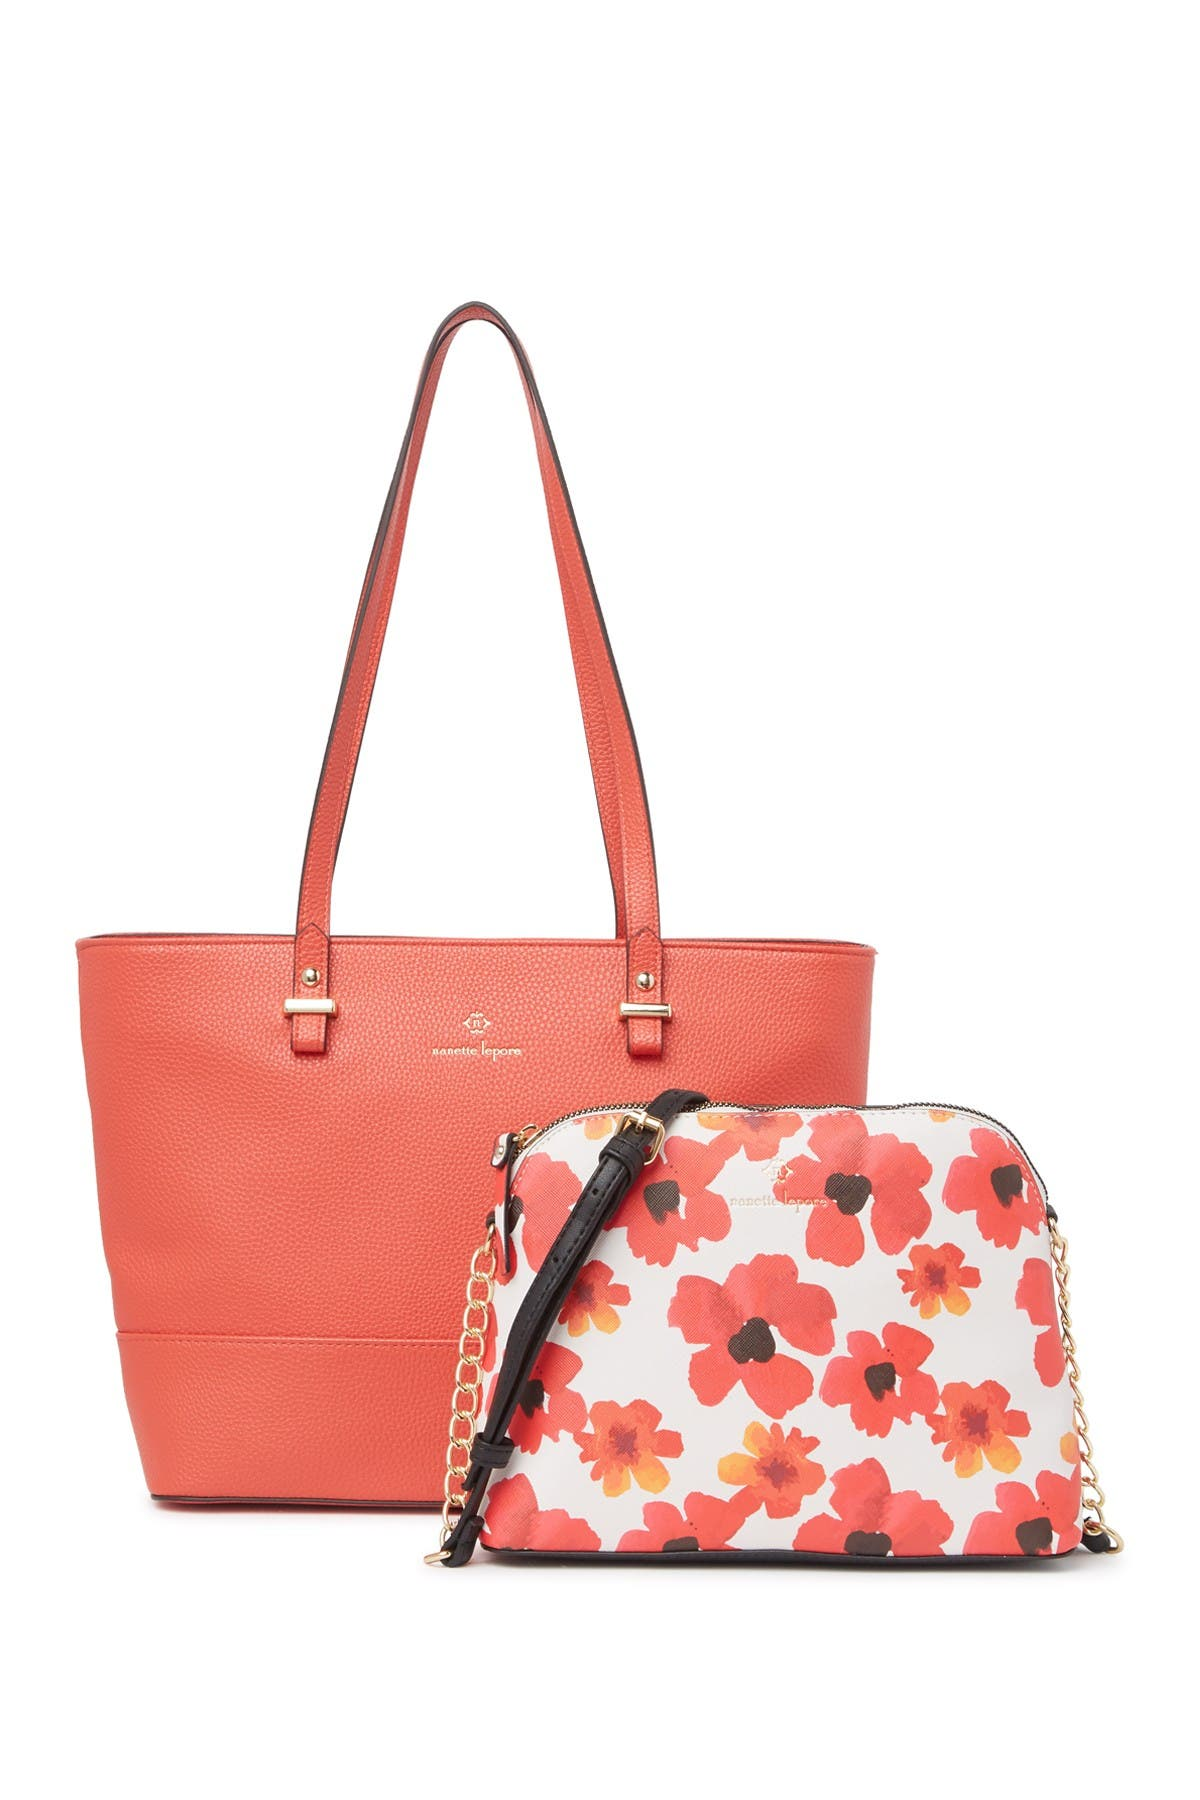 Image of Nanette Lepore Brielle Floral Printed Partial Chain Crossbody Bag